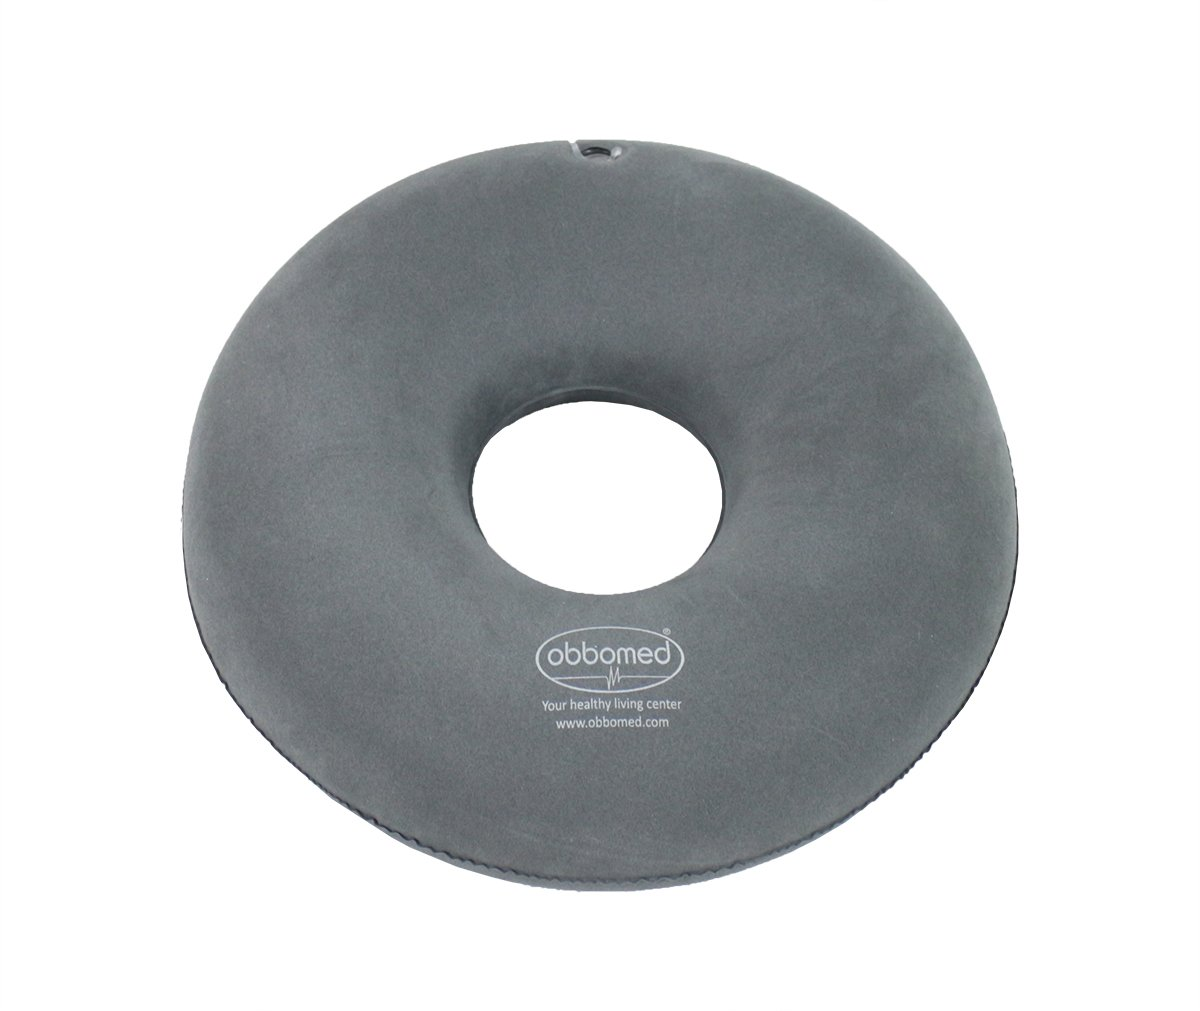 ObboMed SV-2500 (15'') Folding Inflatable Portable Ring Donut Seat Pillow Cushion – Relieves pain from hemorrhoids, Tailbone and Coccyx, bed sores, perineal pain, sciatica post child birth by ObboMed (Image #4)